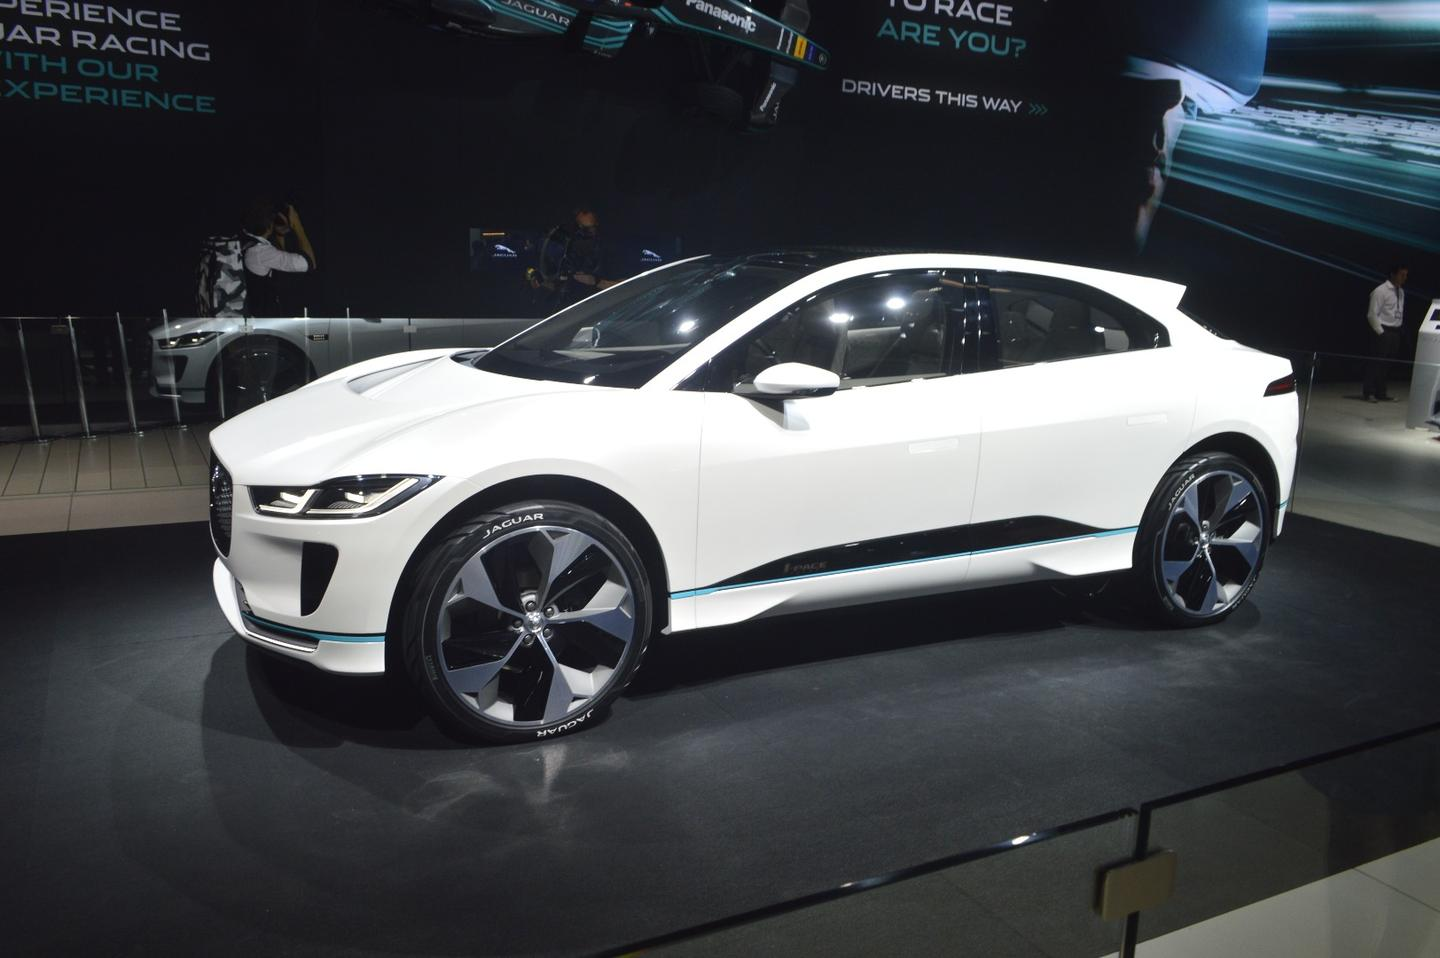 The Jaguar I-Pace eTrophy series will be using modified versions of the I-Pace electric crossover, set to debut in 2018